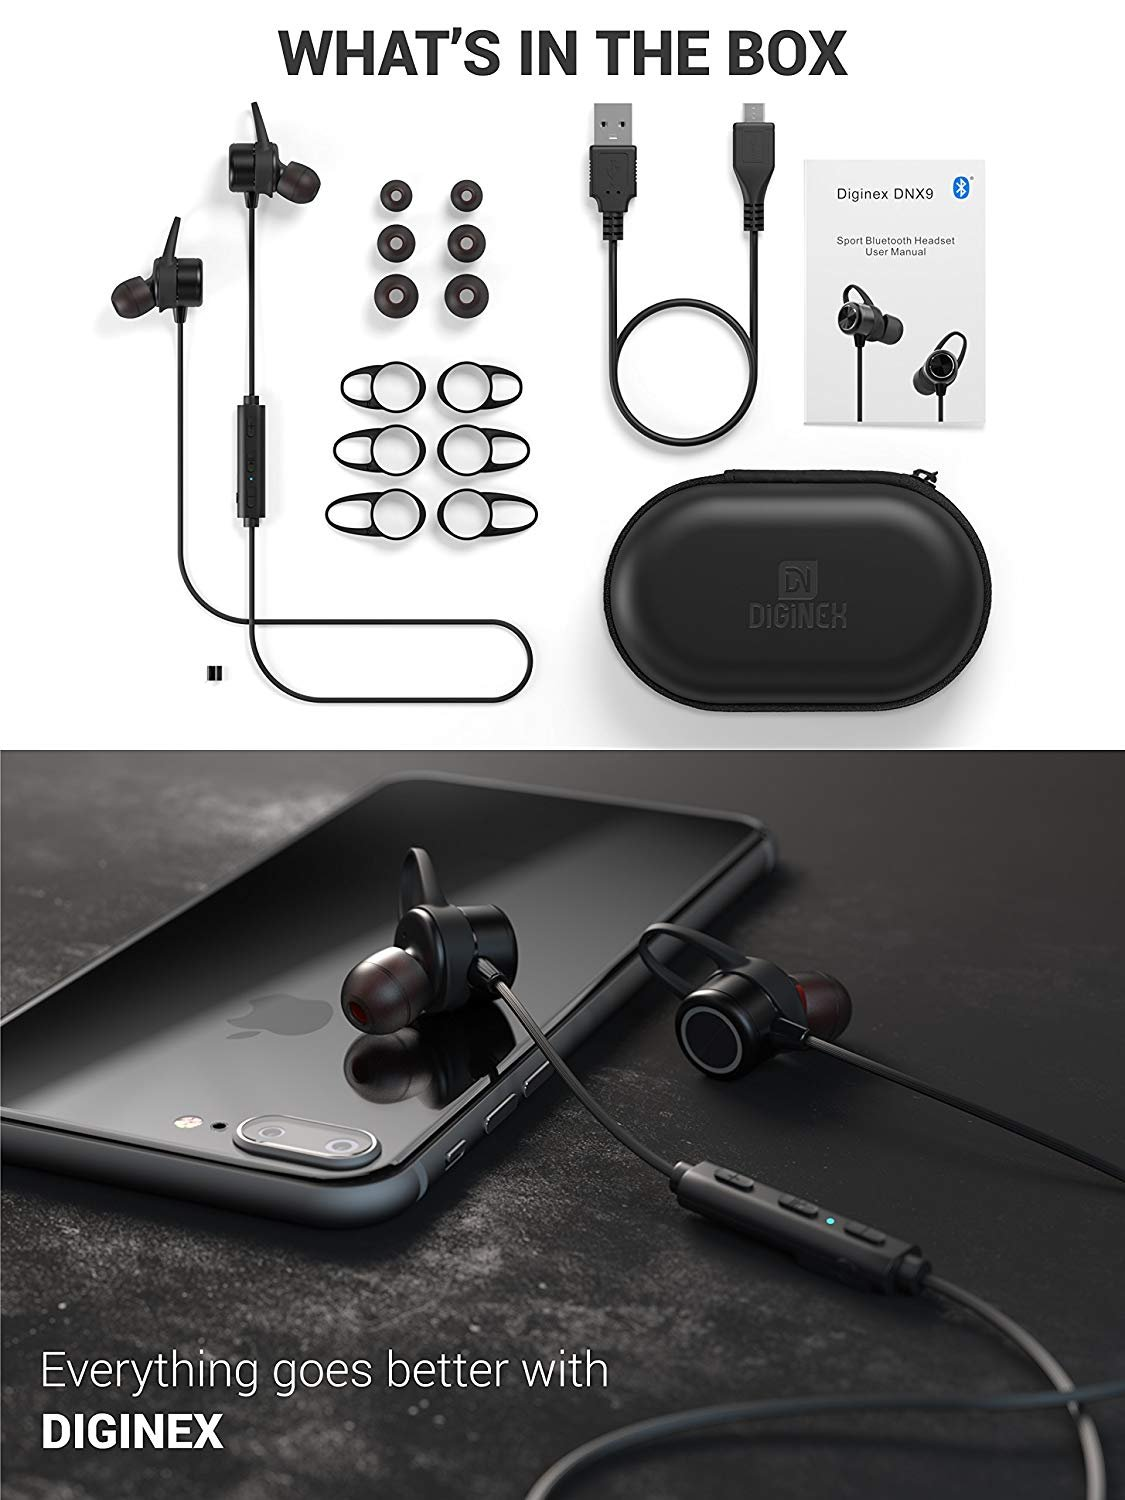 Diginex Bluetooth Earbuds Wireless Magnetic Headset Sport Earphones for Running IPX7 Waterproof Headphones 9 Hours Playtime High Fidelity Stereo Sound and Noise Cancelling Mic 1 Hour Recharge – Black by Diginex (Image #7)